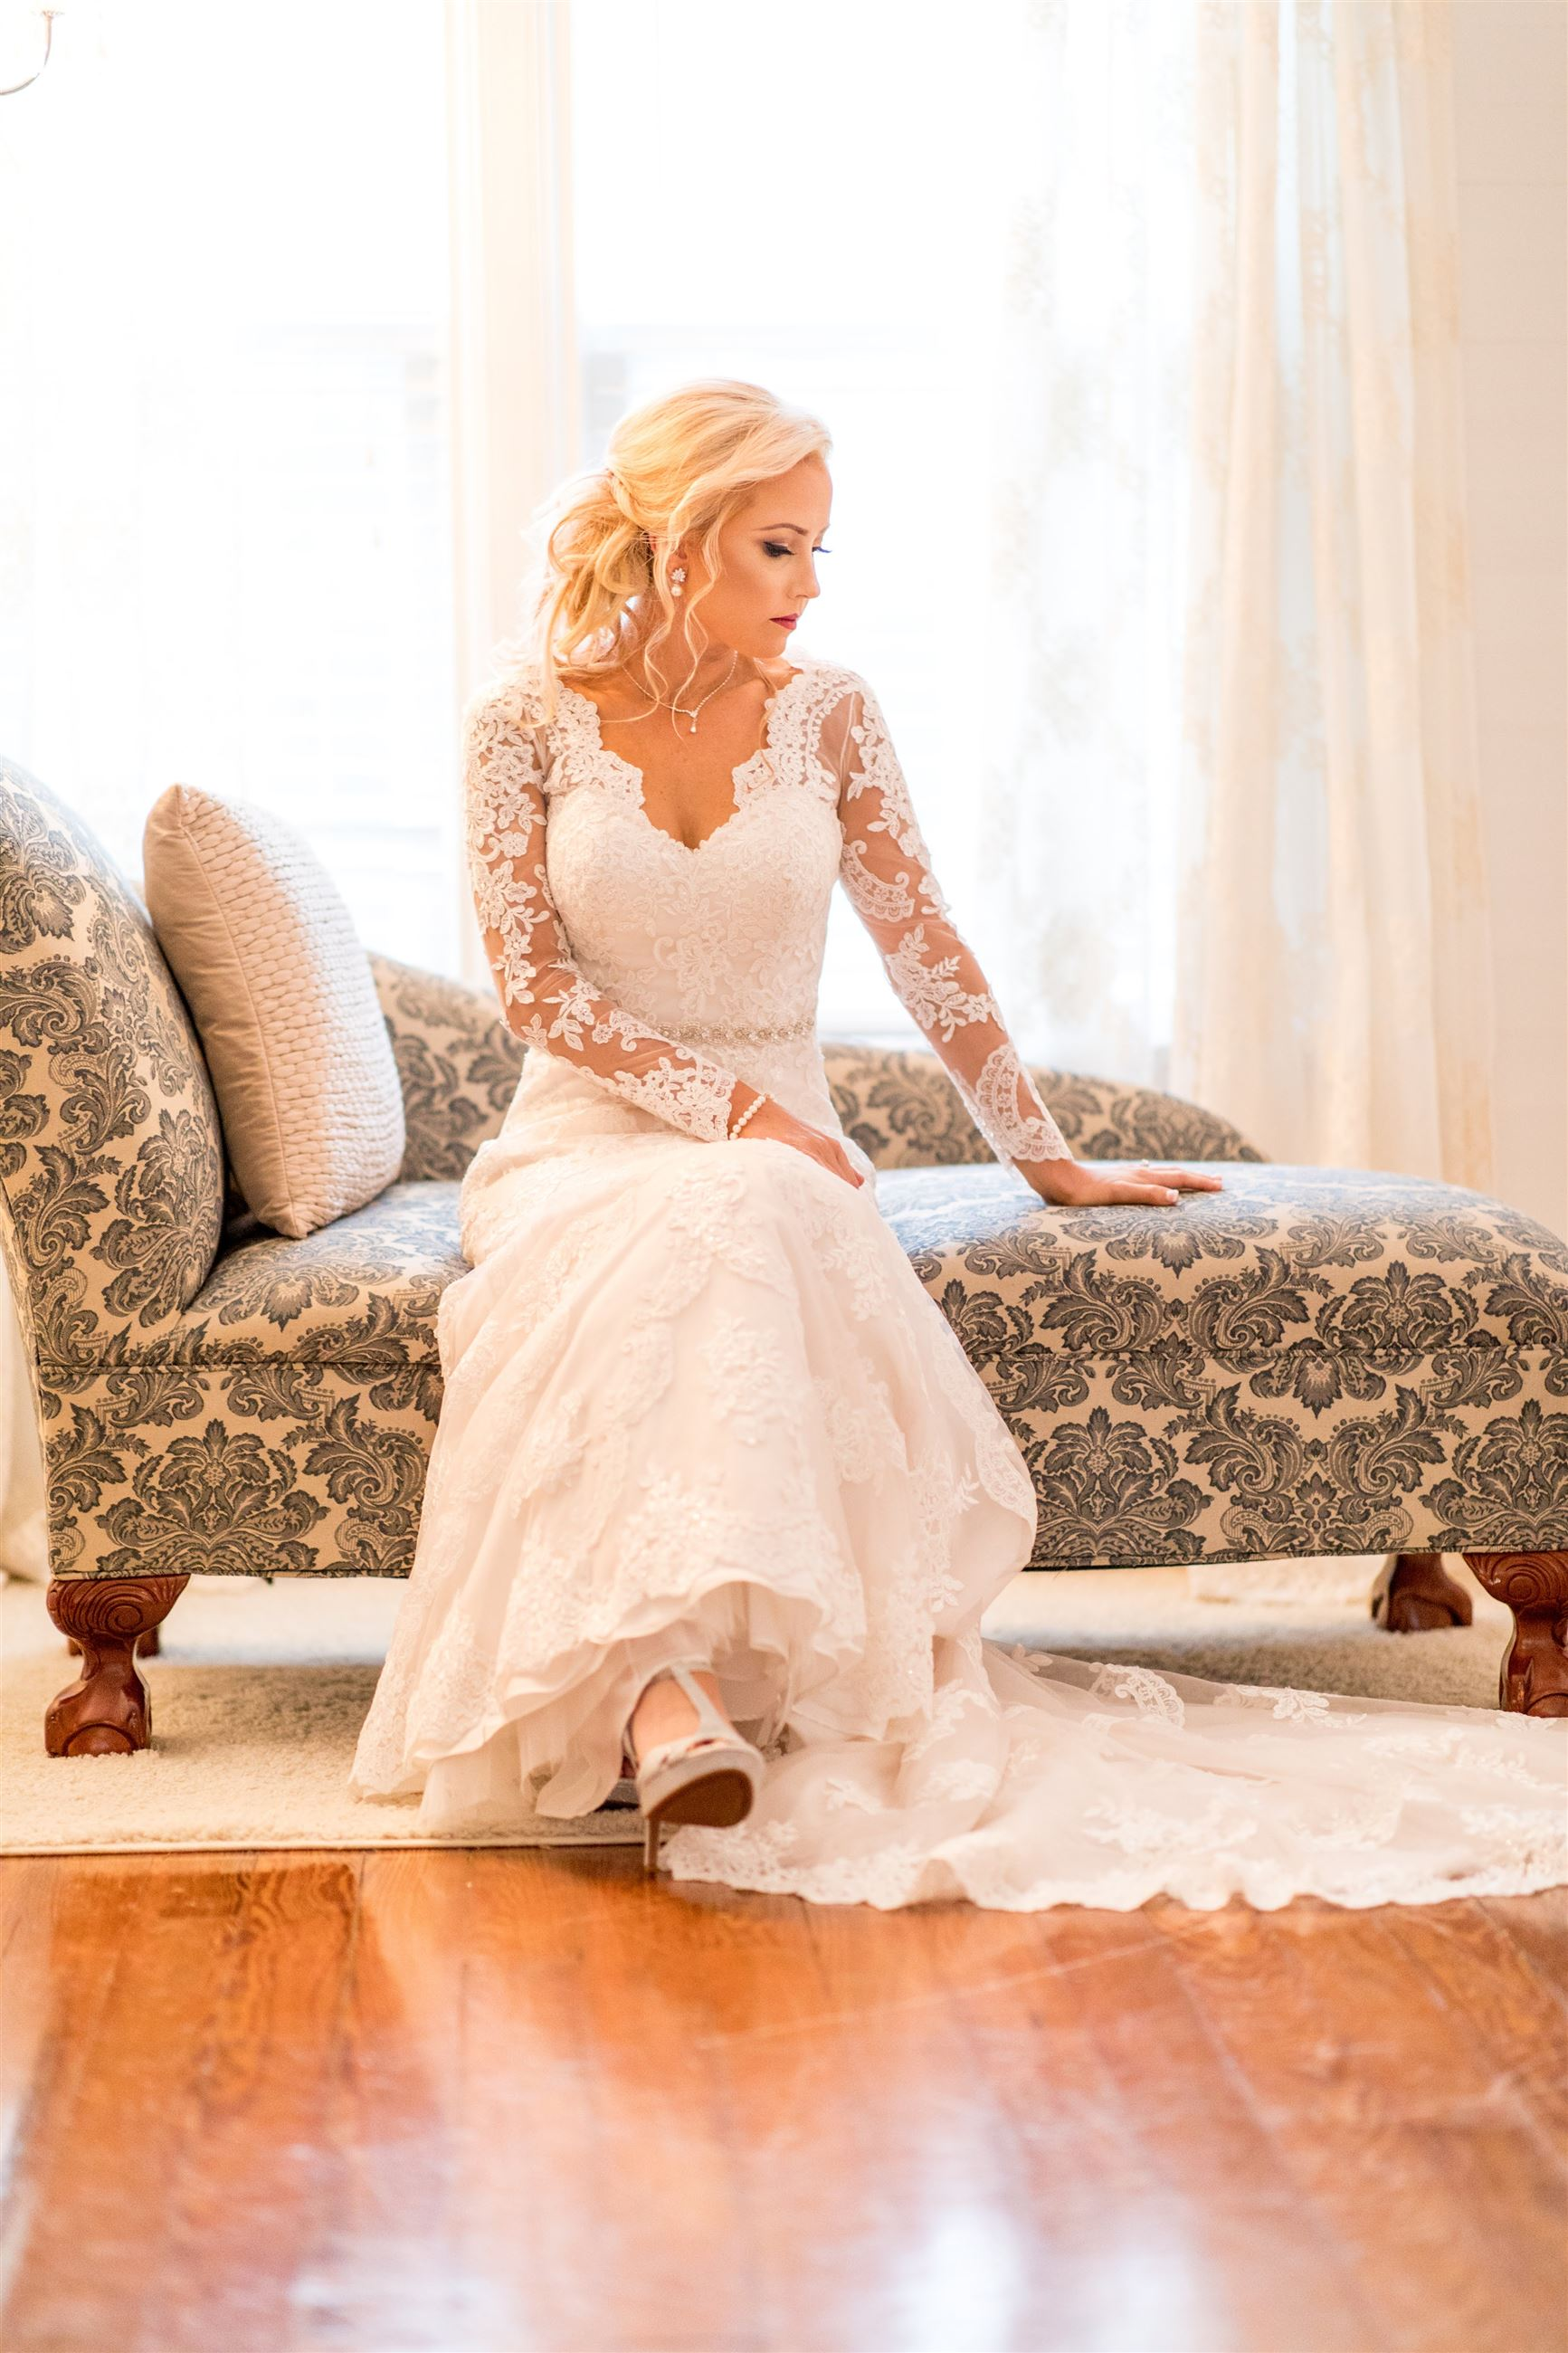 All About Alterations: Making Your Bridal Gown Perfect